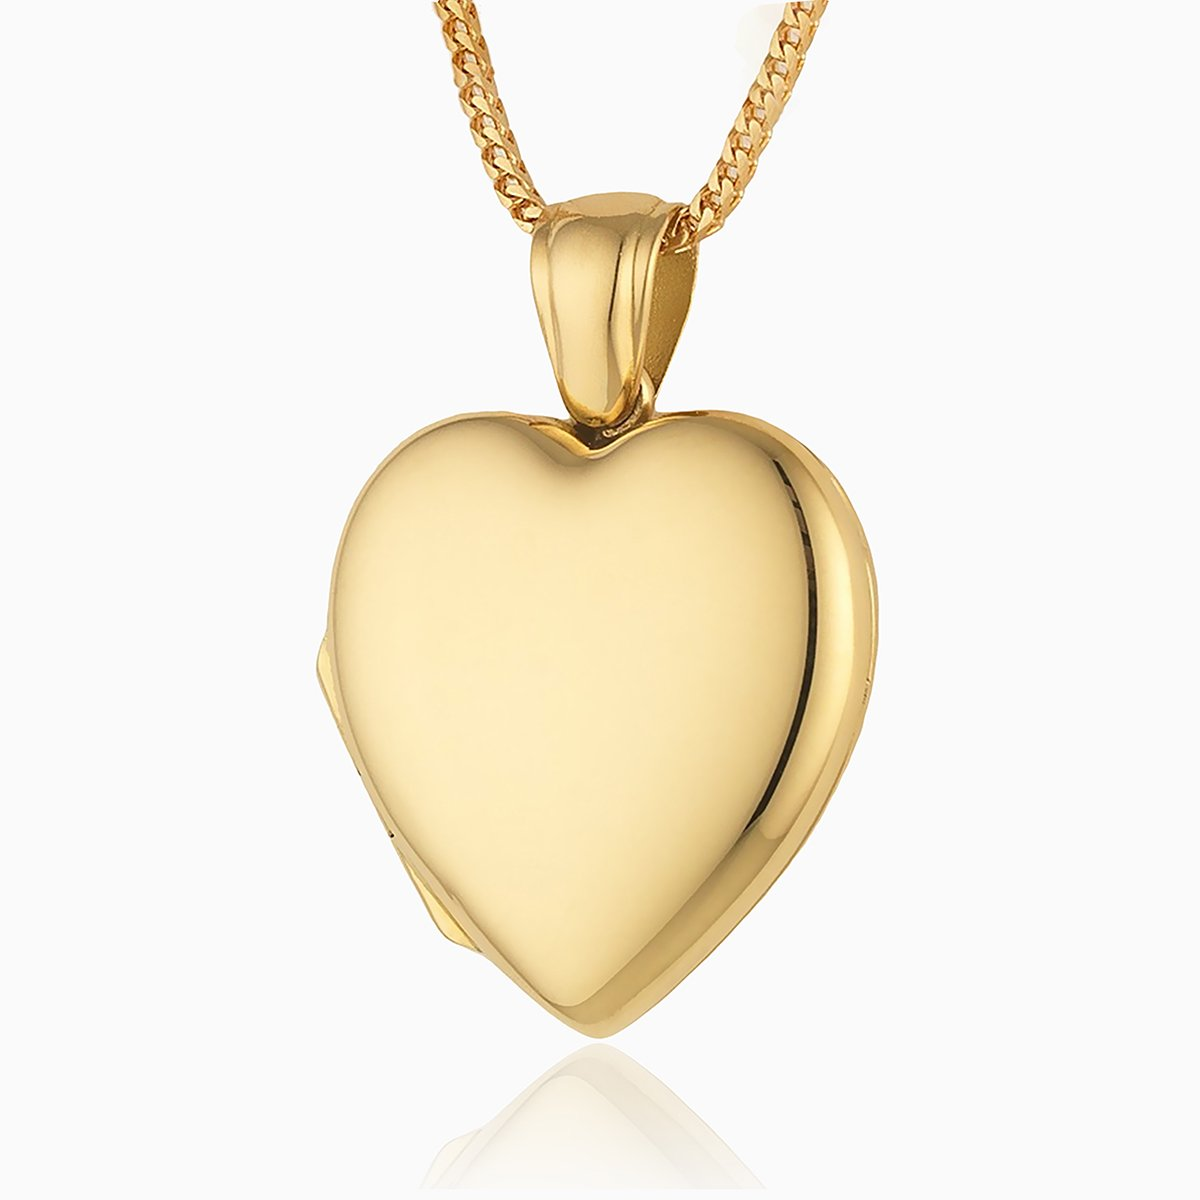 Product title: 18 ct Gold Heart, product type: Locket